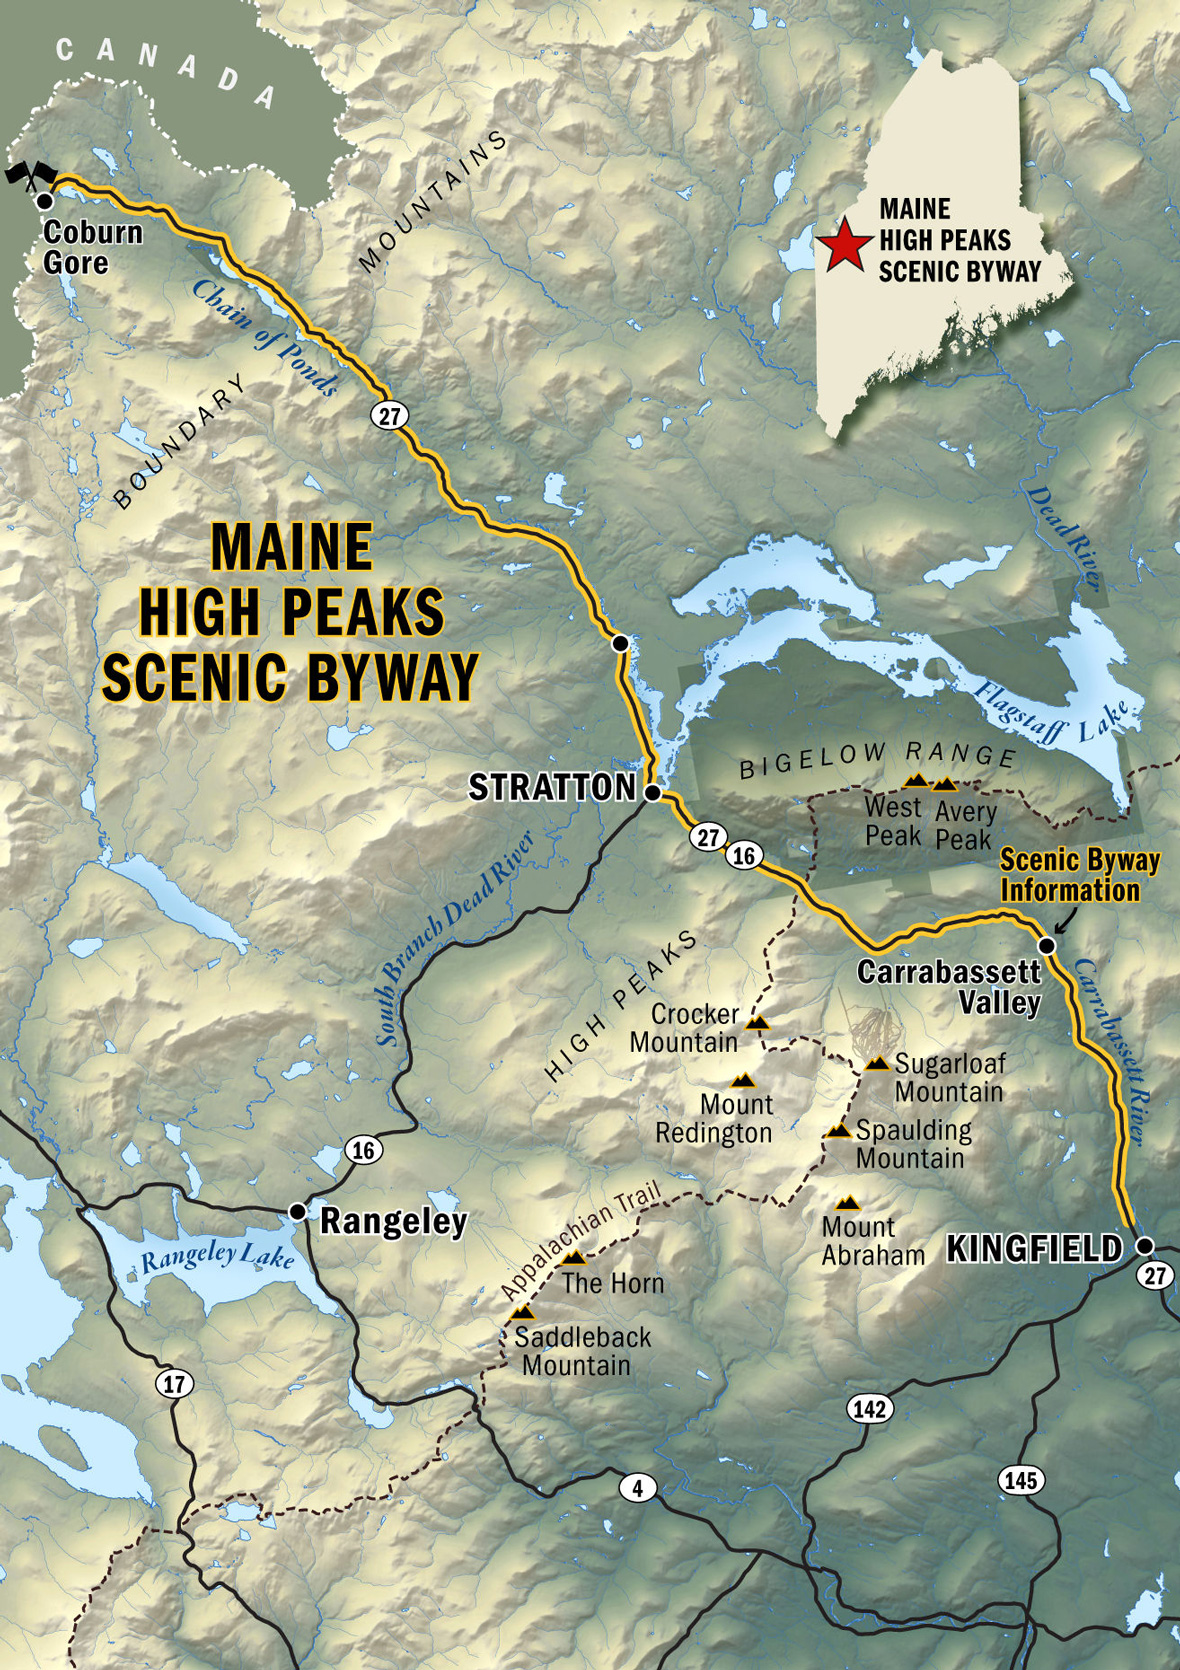 Maine High Peaks Scenic Byway Map